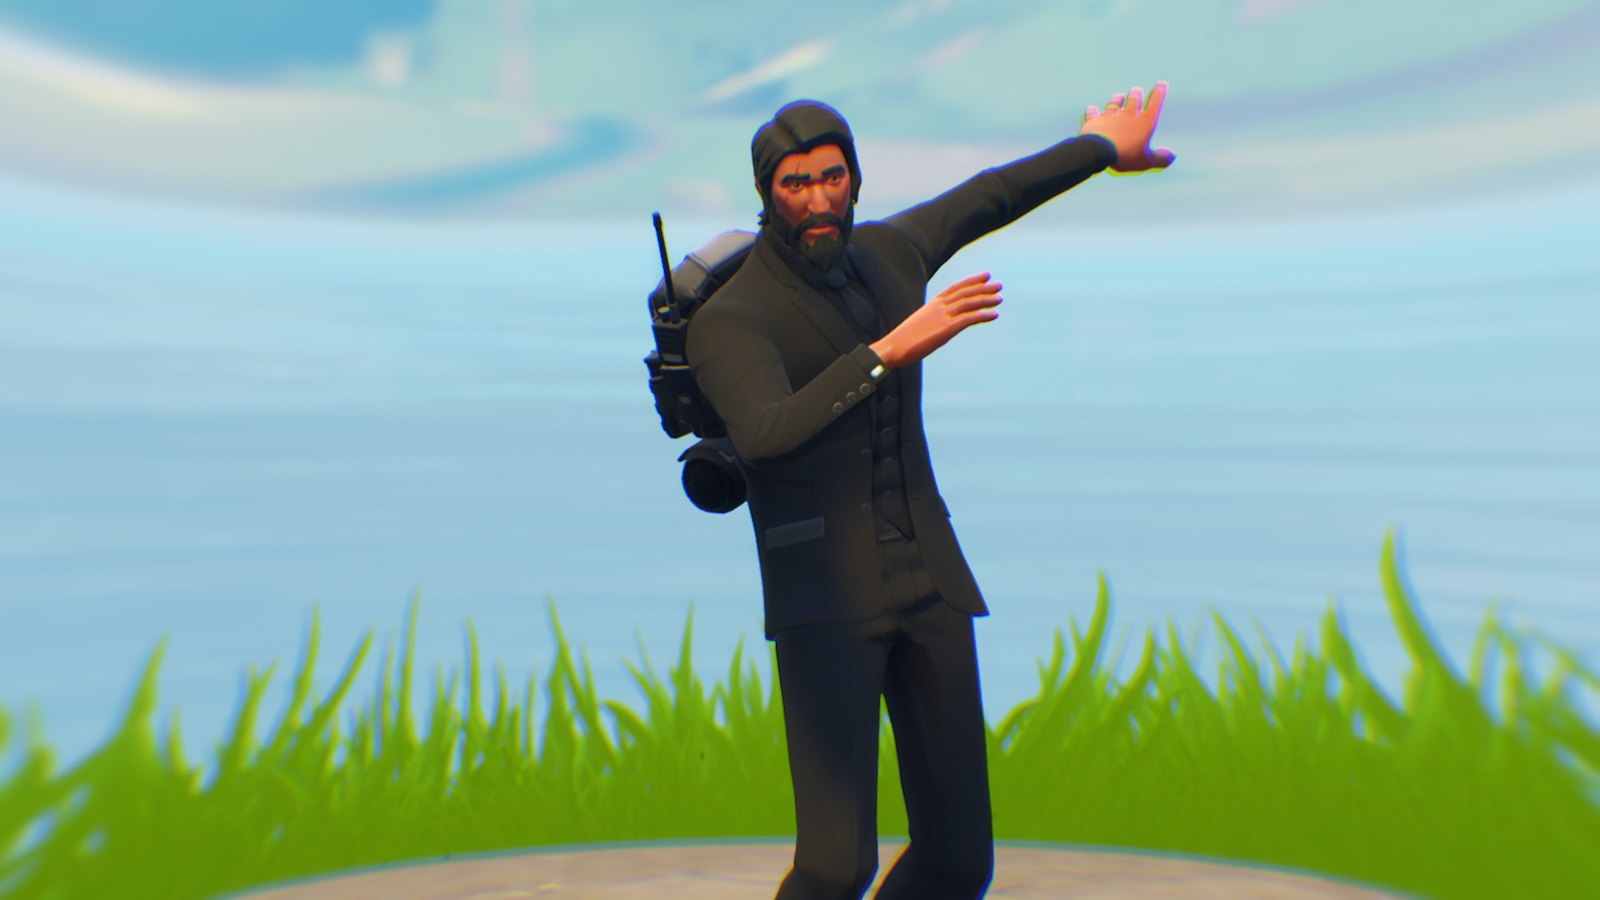 Fortnite John Wick dab wallpaper   Album on Imgur 1600x900